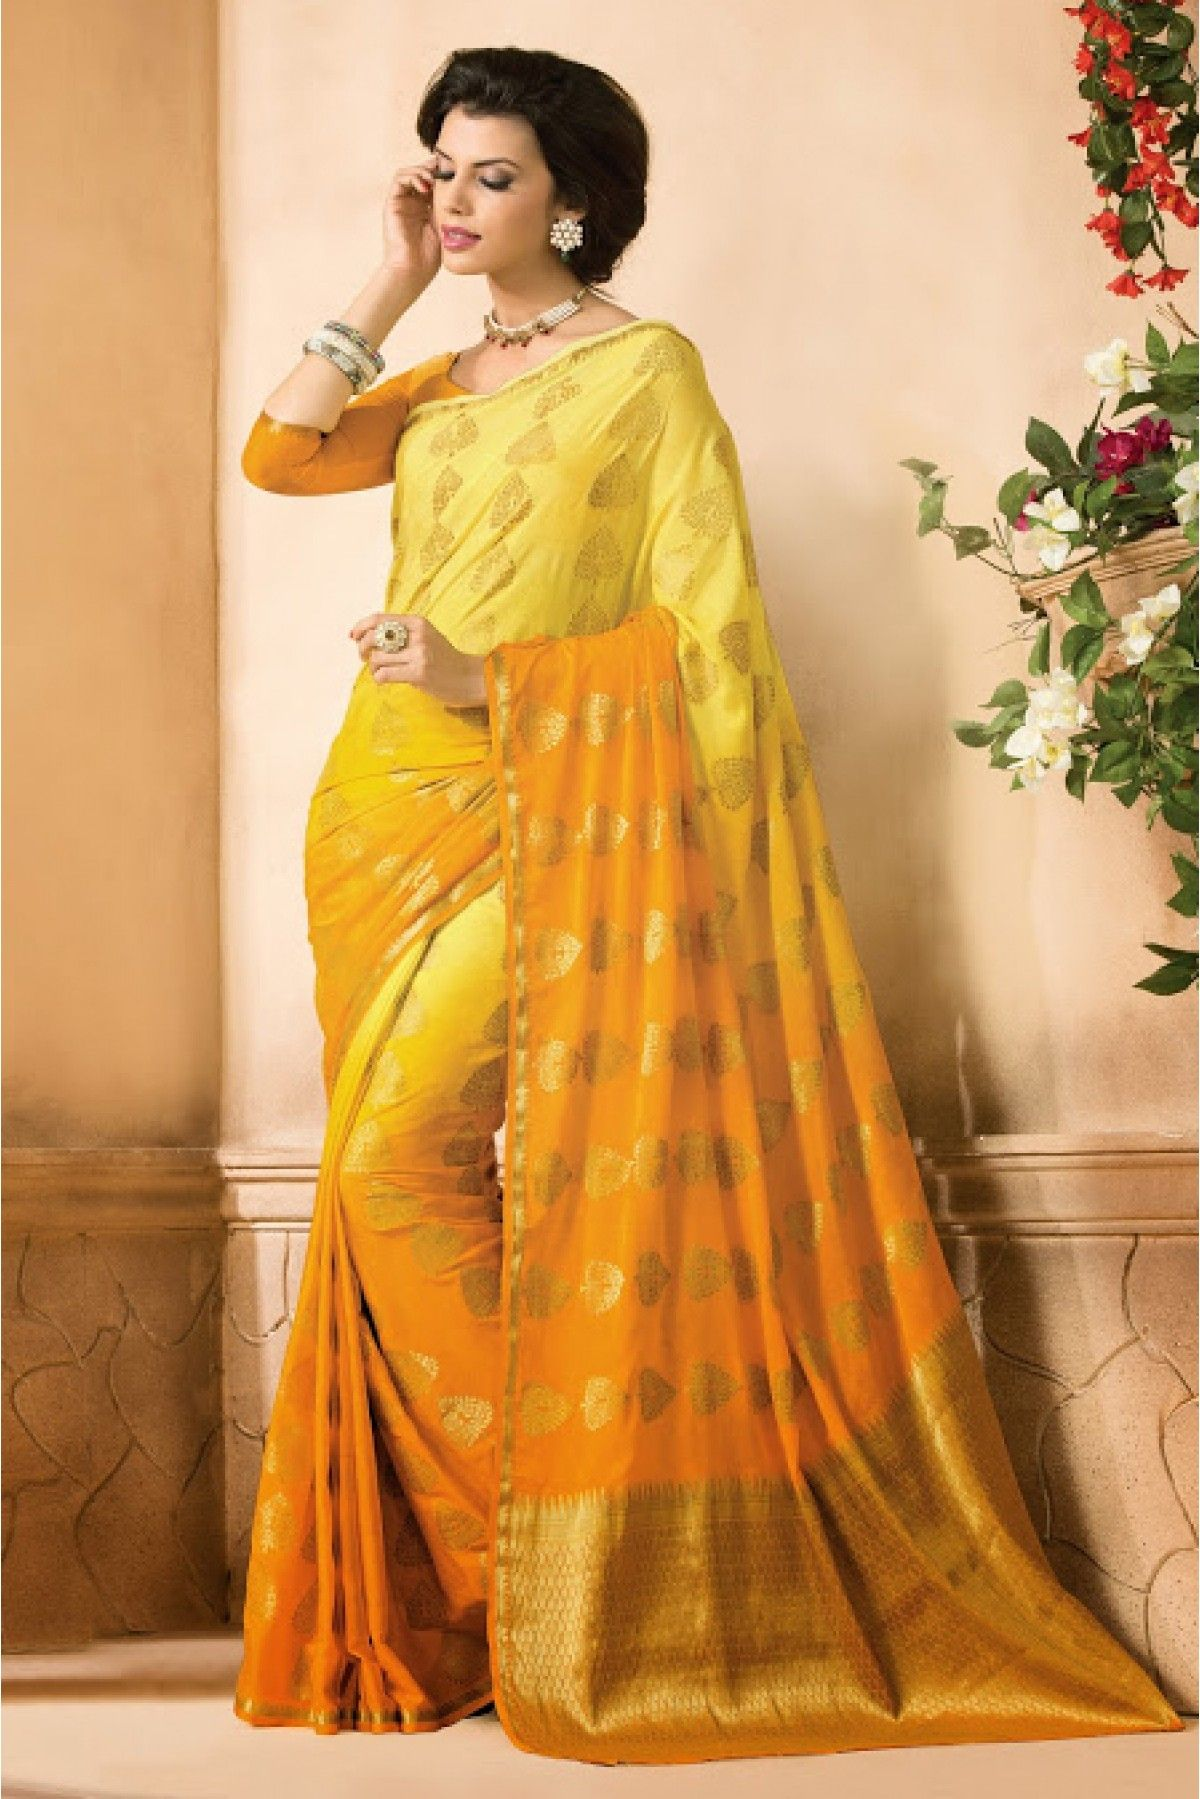 e24e0ed2265a15 Buy Crepe Silk Printed and Lace Work Saree in Yellow and Gold Colour for  women @ ninecolours.com. Best Price Guaranteed!